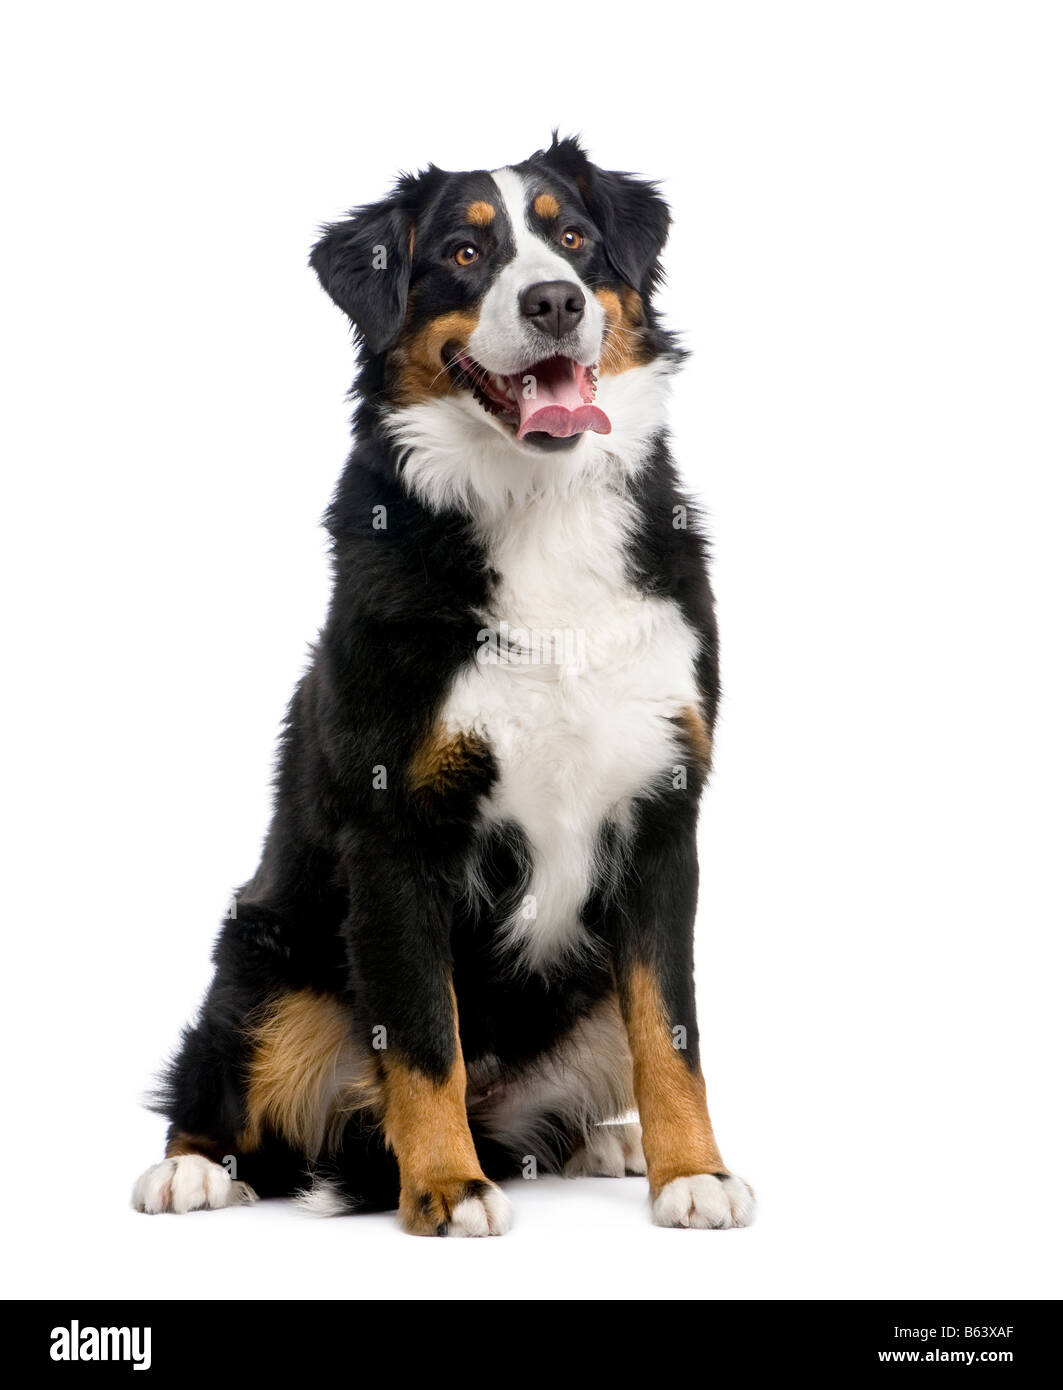 Bernese mountain dog 15 months in front of a white background - Stock Image